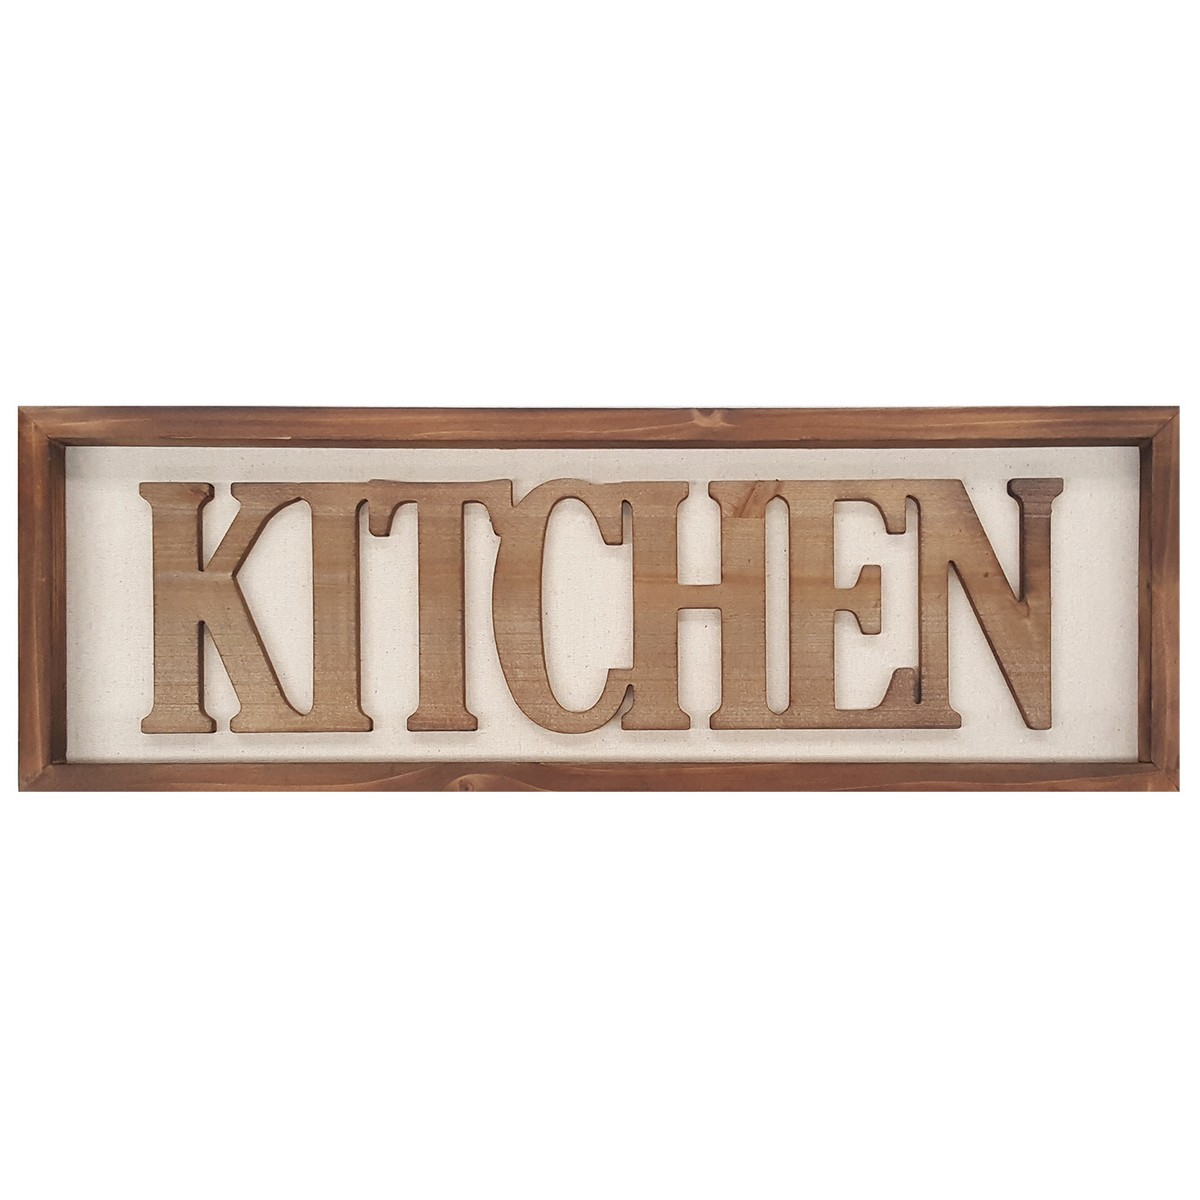 Stratton home decor kitchen wall art natural wood and for Stratton house